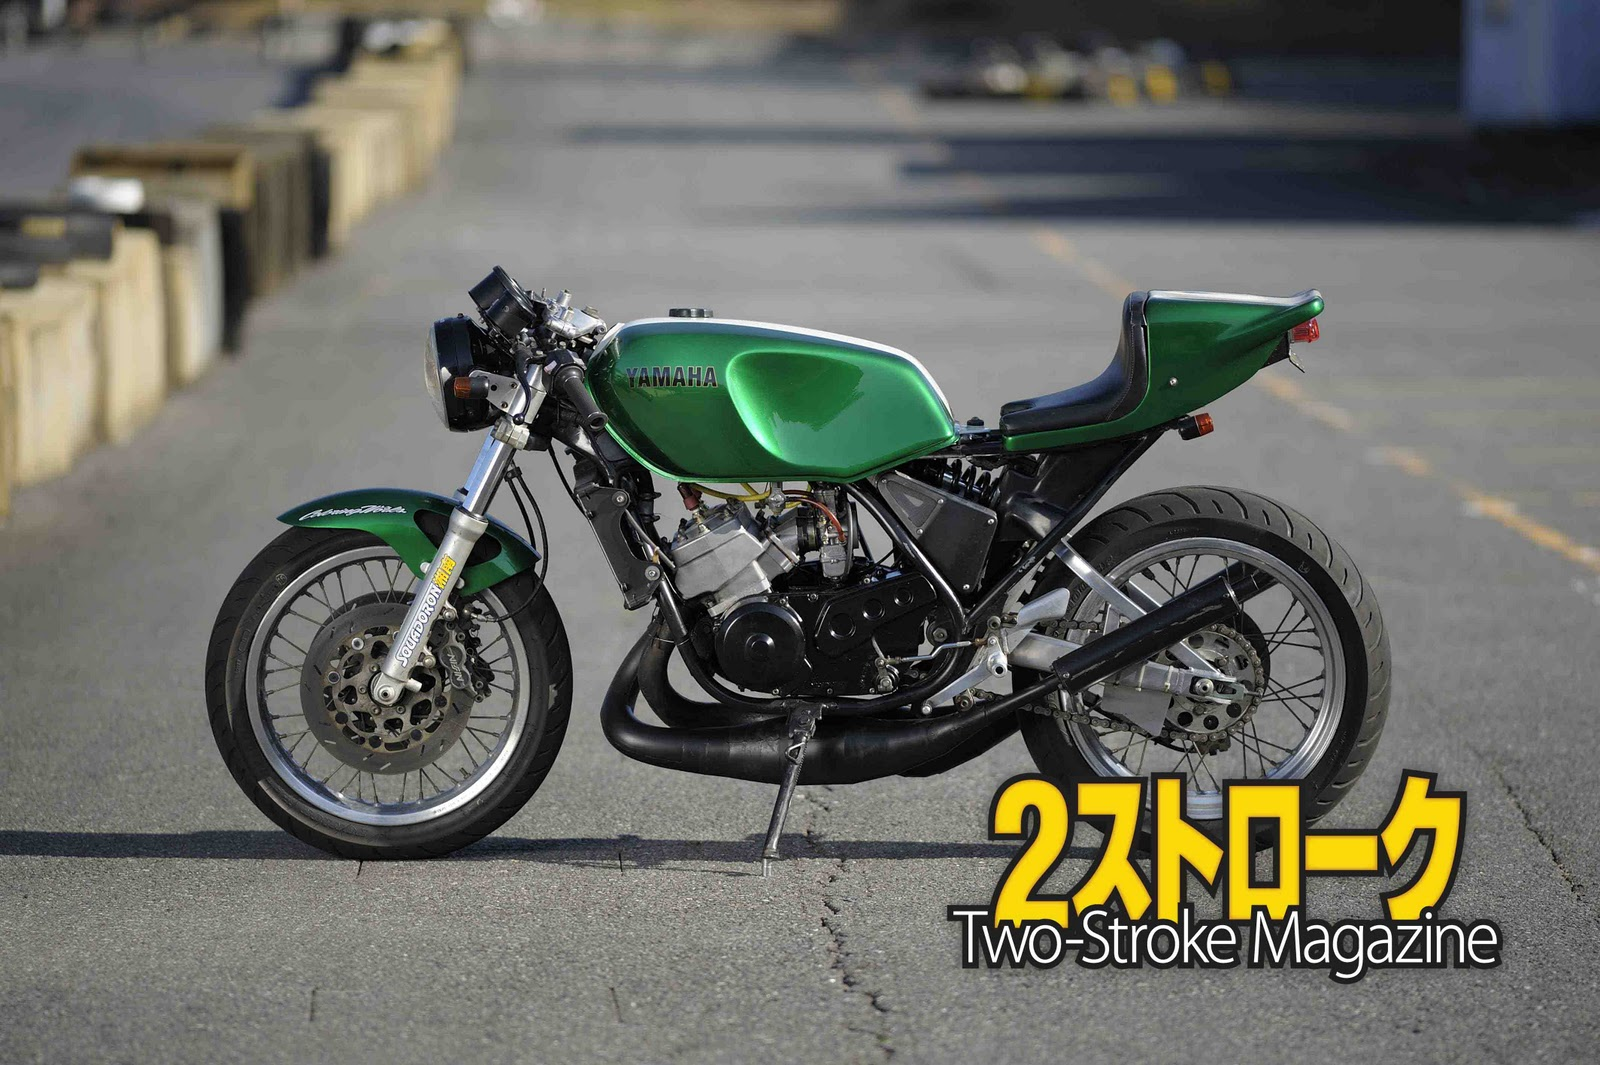 Yamaha Rz410 Rd250lc Frame With Rz350 Engine Tz250 Forks